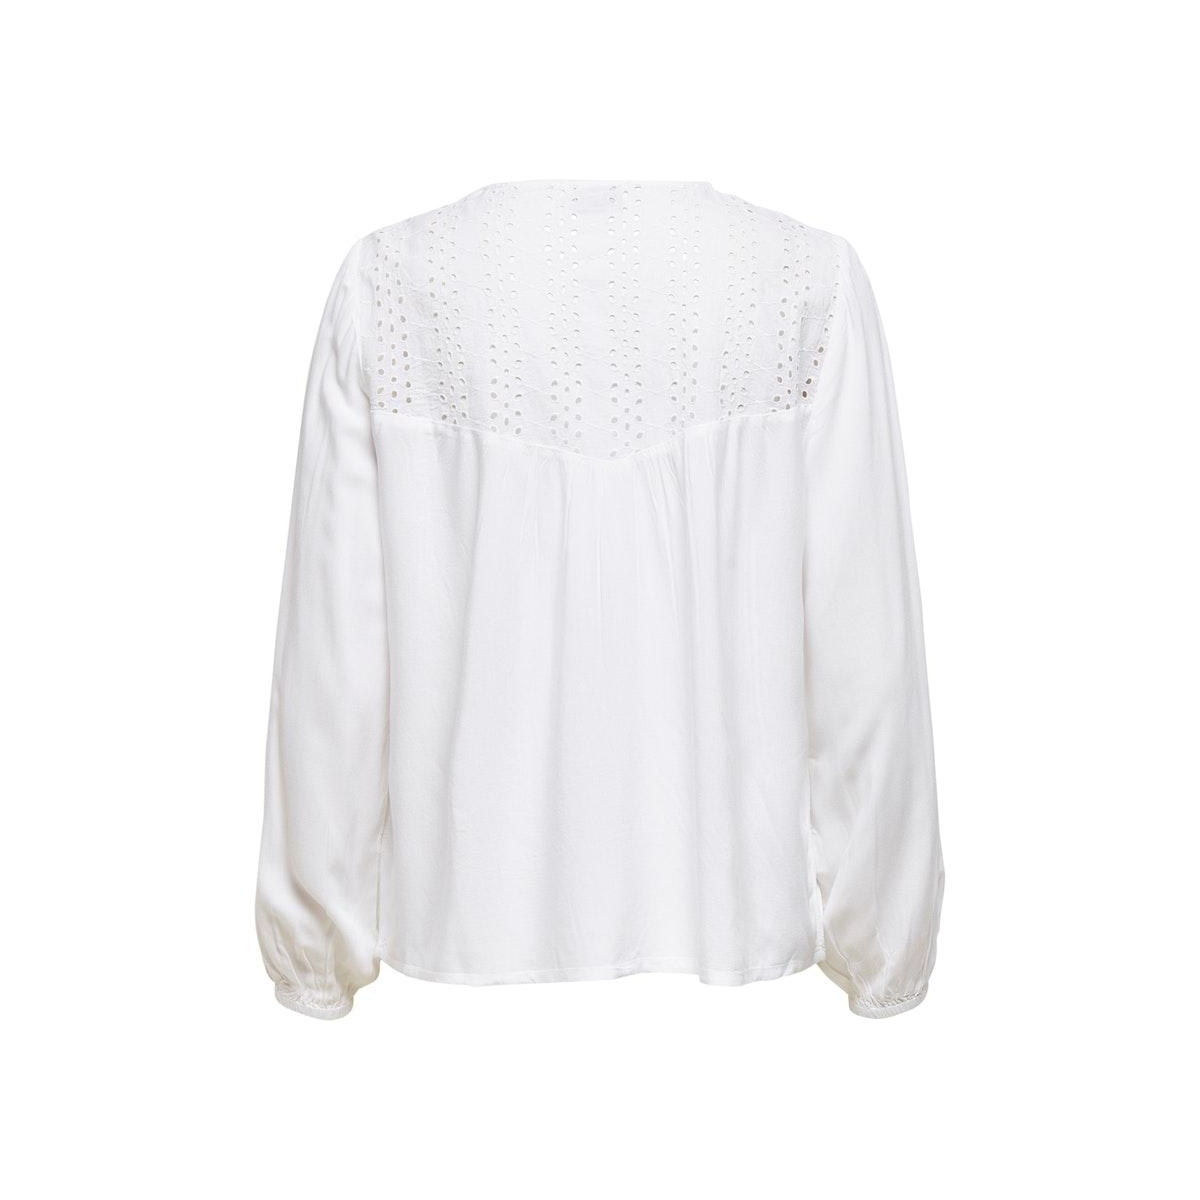 jdytylie l/s emb. blouse wvn 15204504 jacqueline de yong blouse cloud dancer